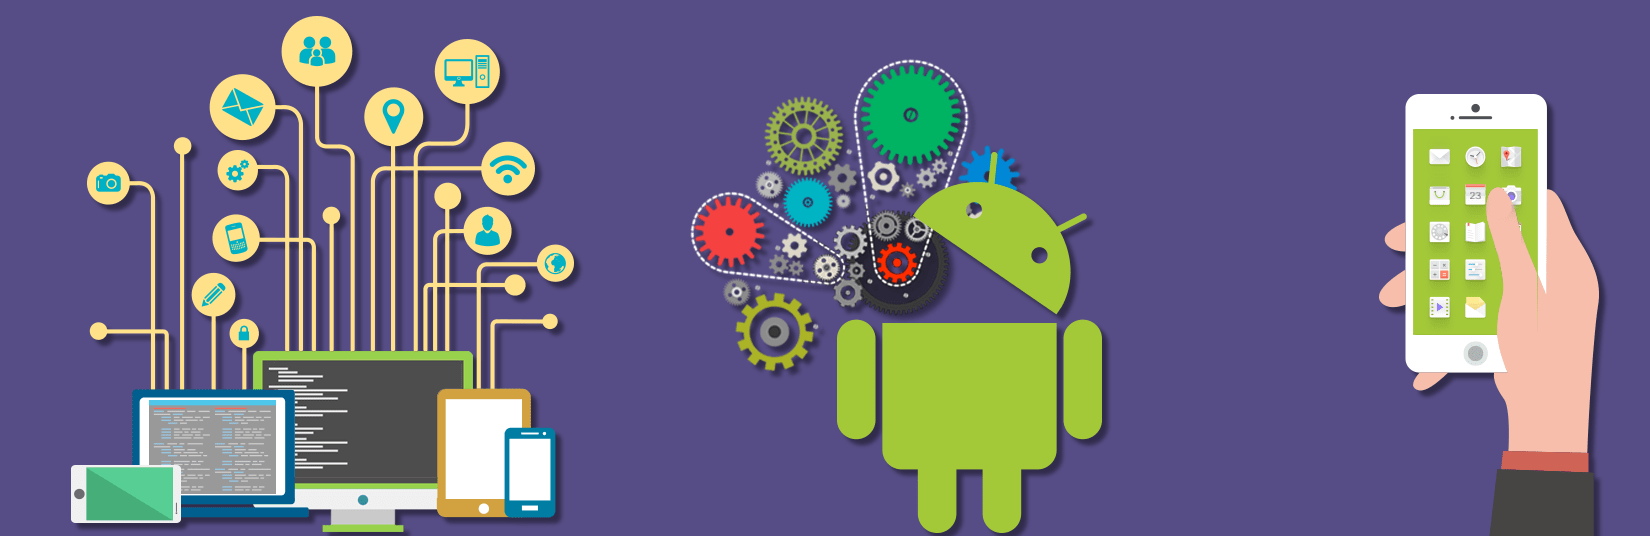 Android Development Course in Punjab